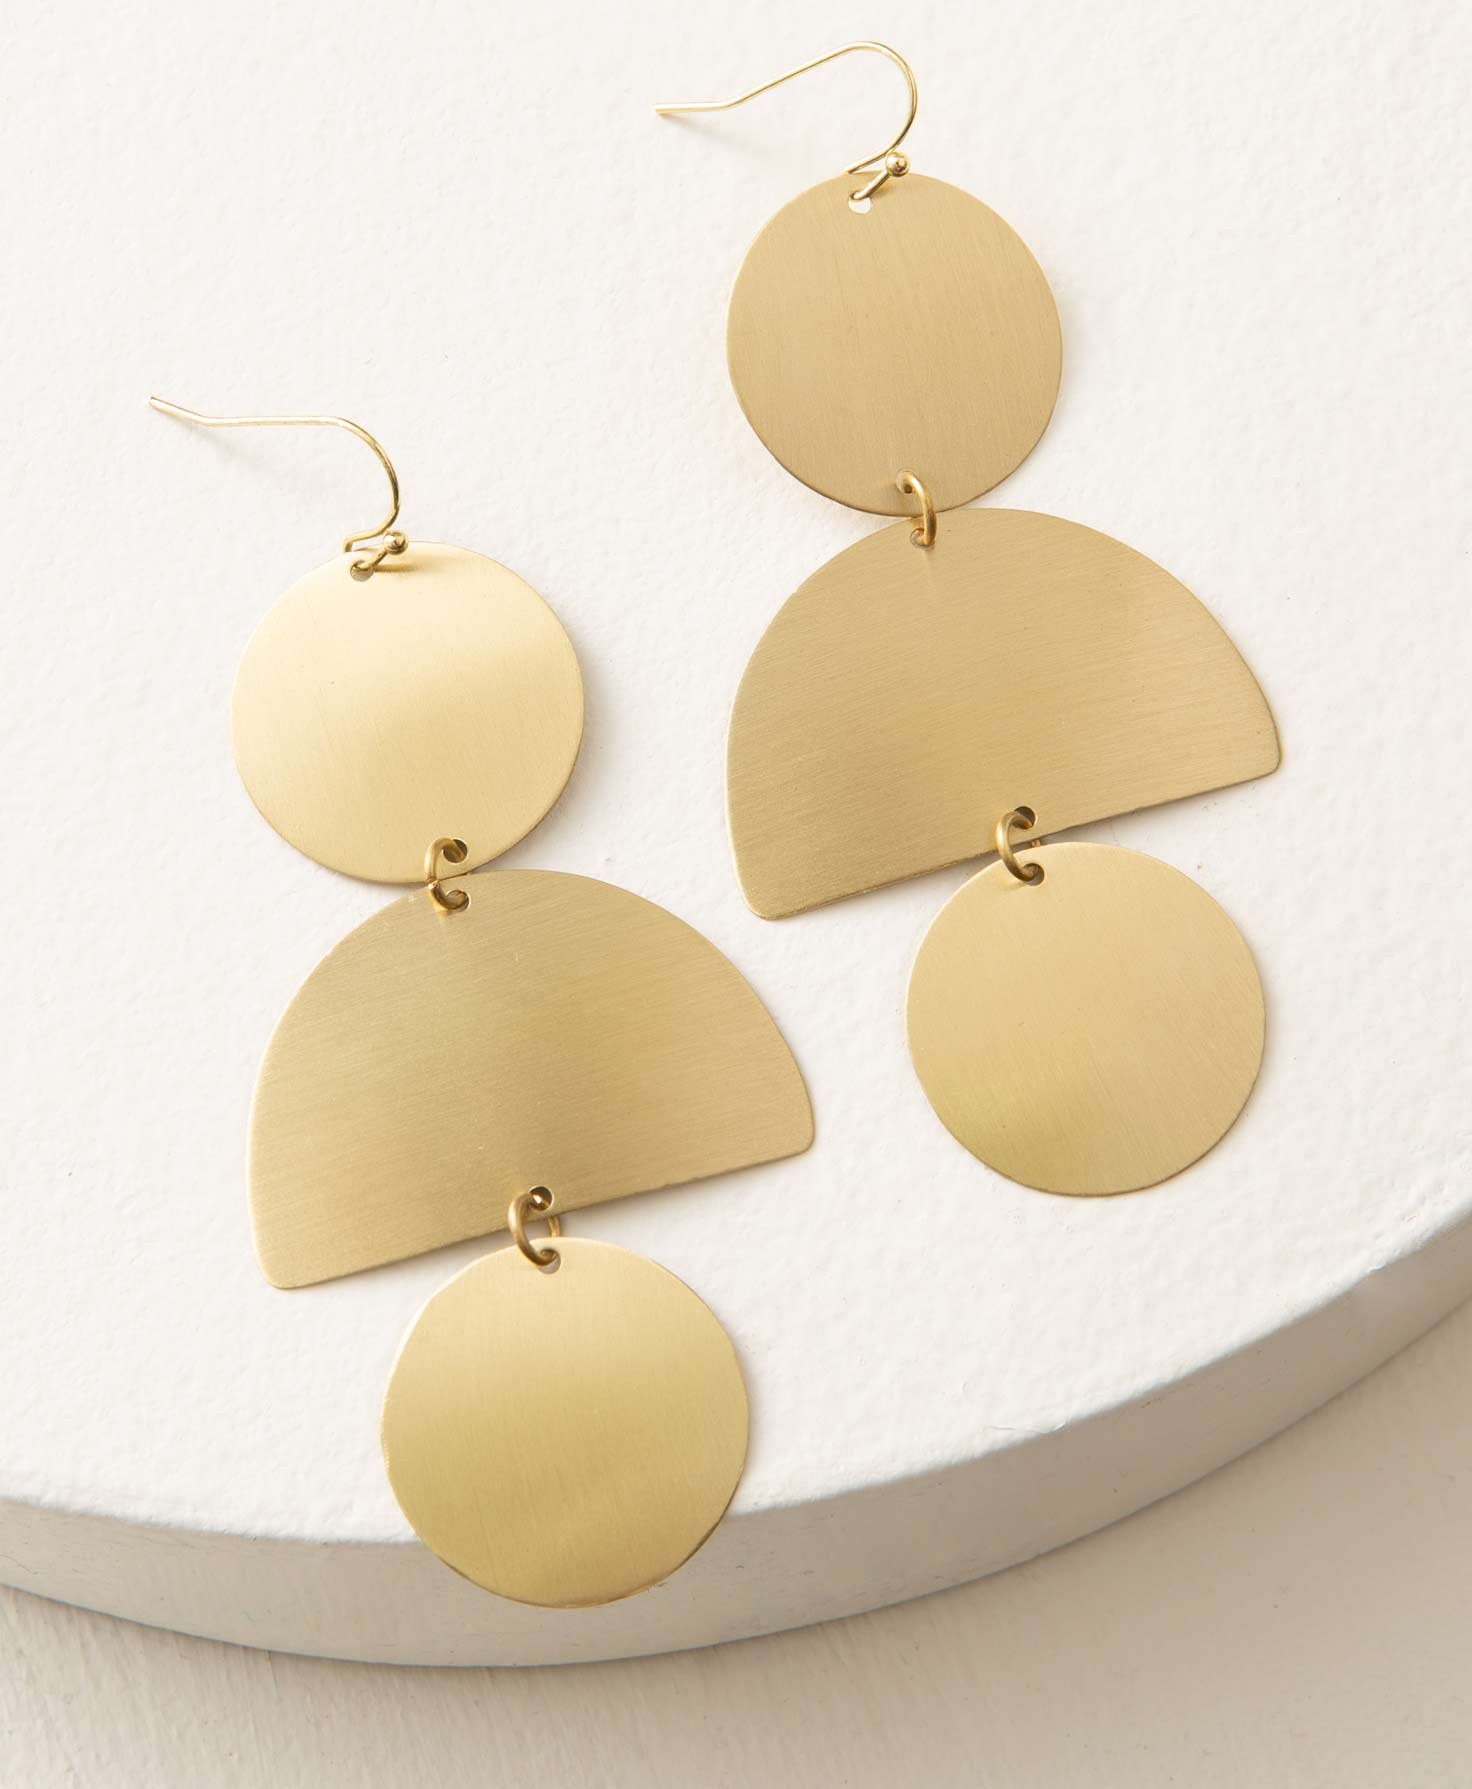 The Plaza Earrings lay on a white surface. They feature flat geometric shapes cut from brass that hang down from a gold ear hook. They have a modern, semi-matte finish that shines, but is not overly glossy. At the top of the earring is a brass circle shape. Connected to this is a brass semi-circle with its flat side facing down. Connected to this shape is a brass circle identical to the first. These statement earrings hang down 3